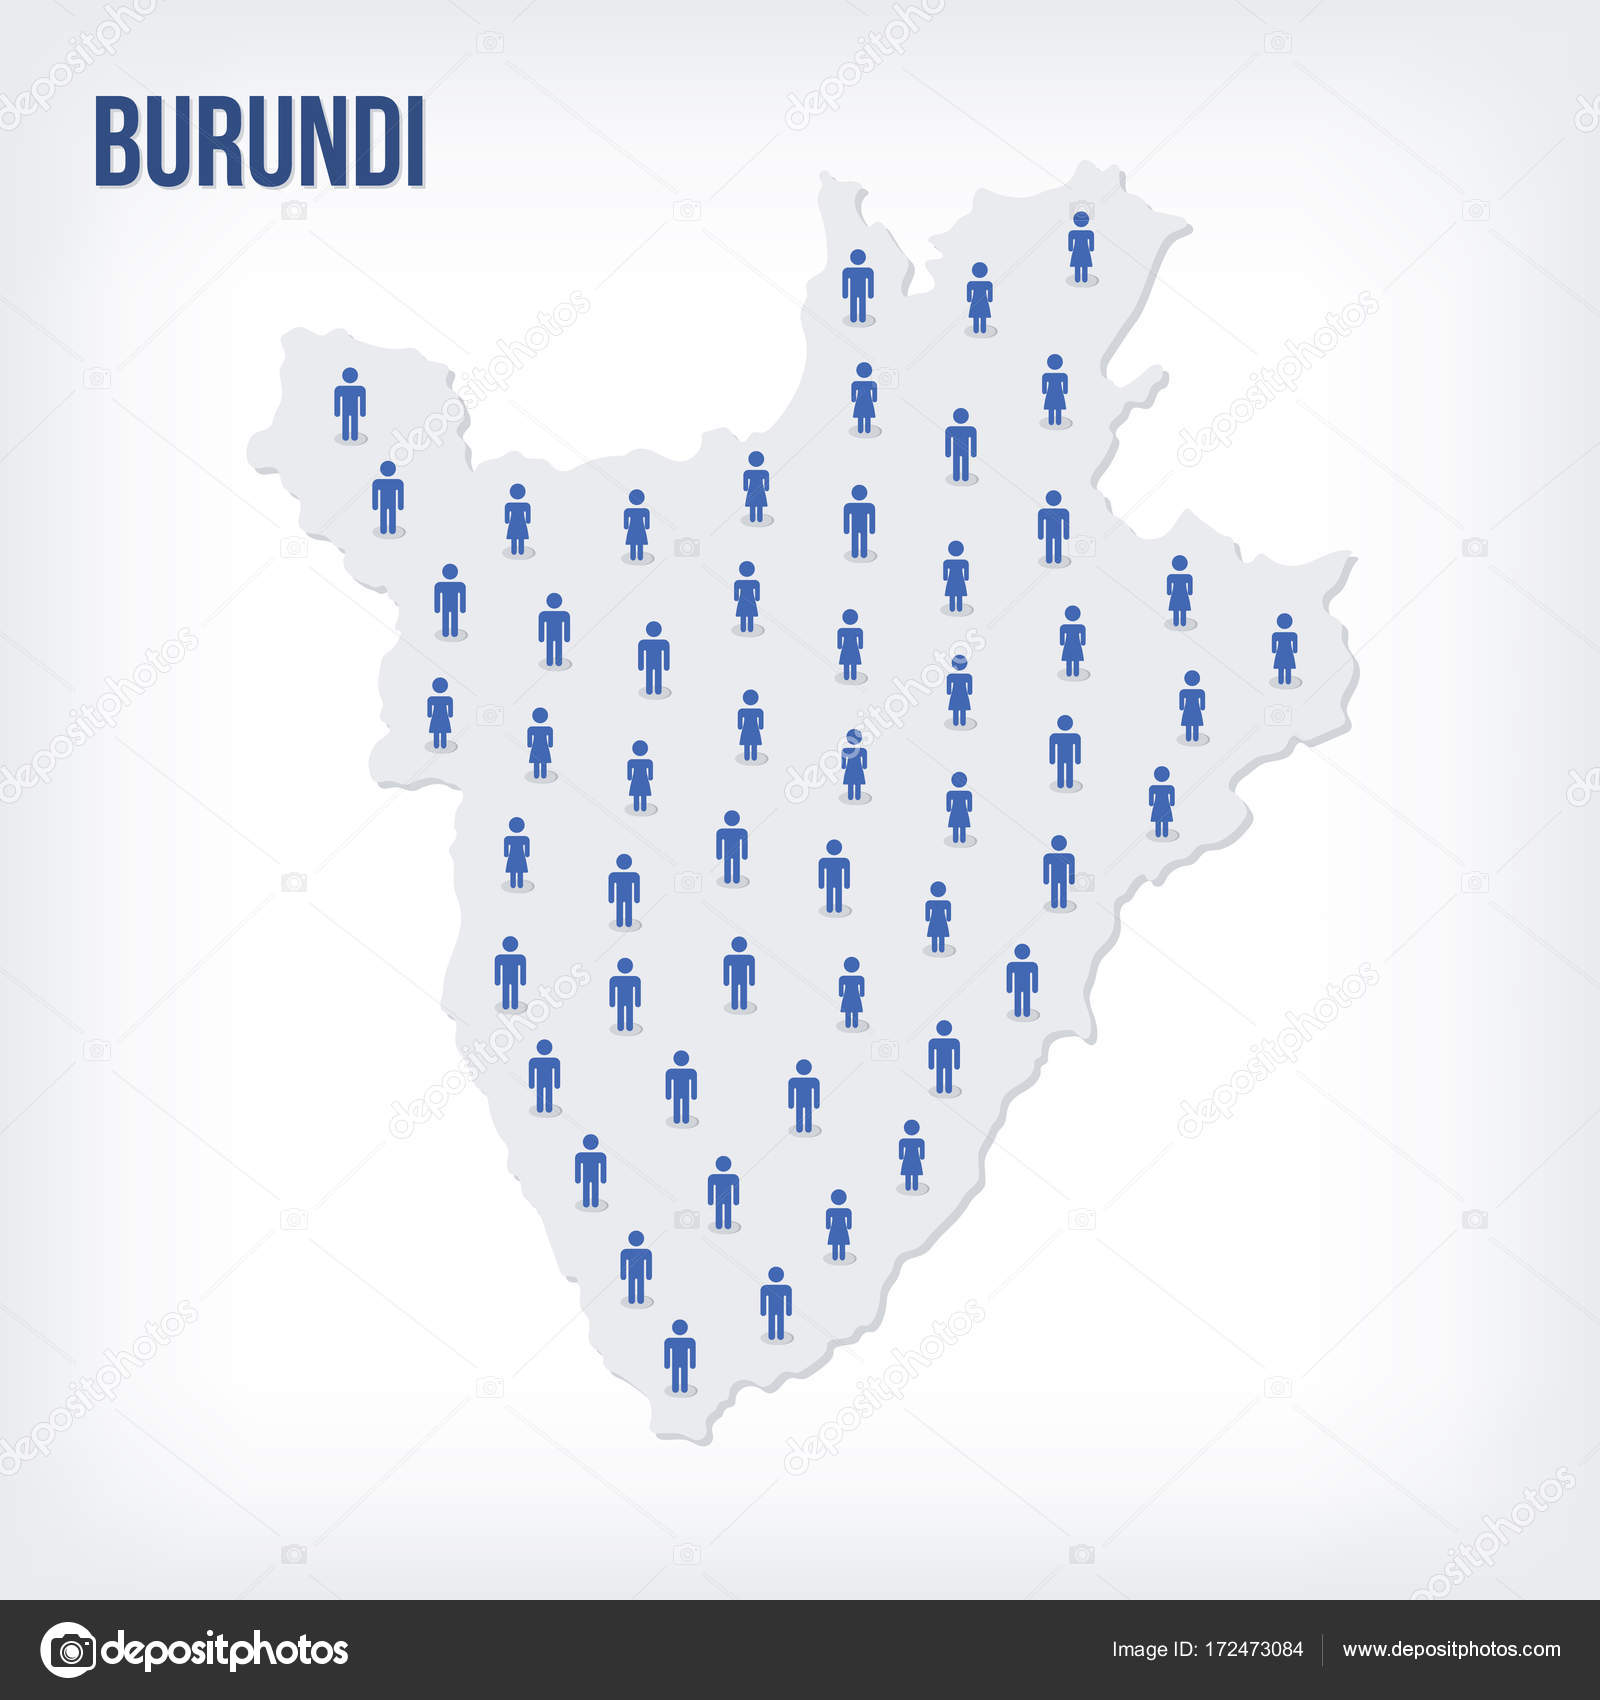 Population Concept Map.Vector People Map Of Burundi The Concept Of Population Stock